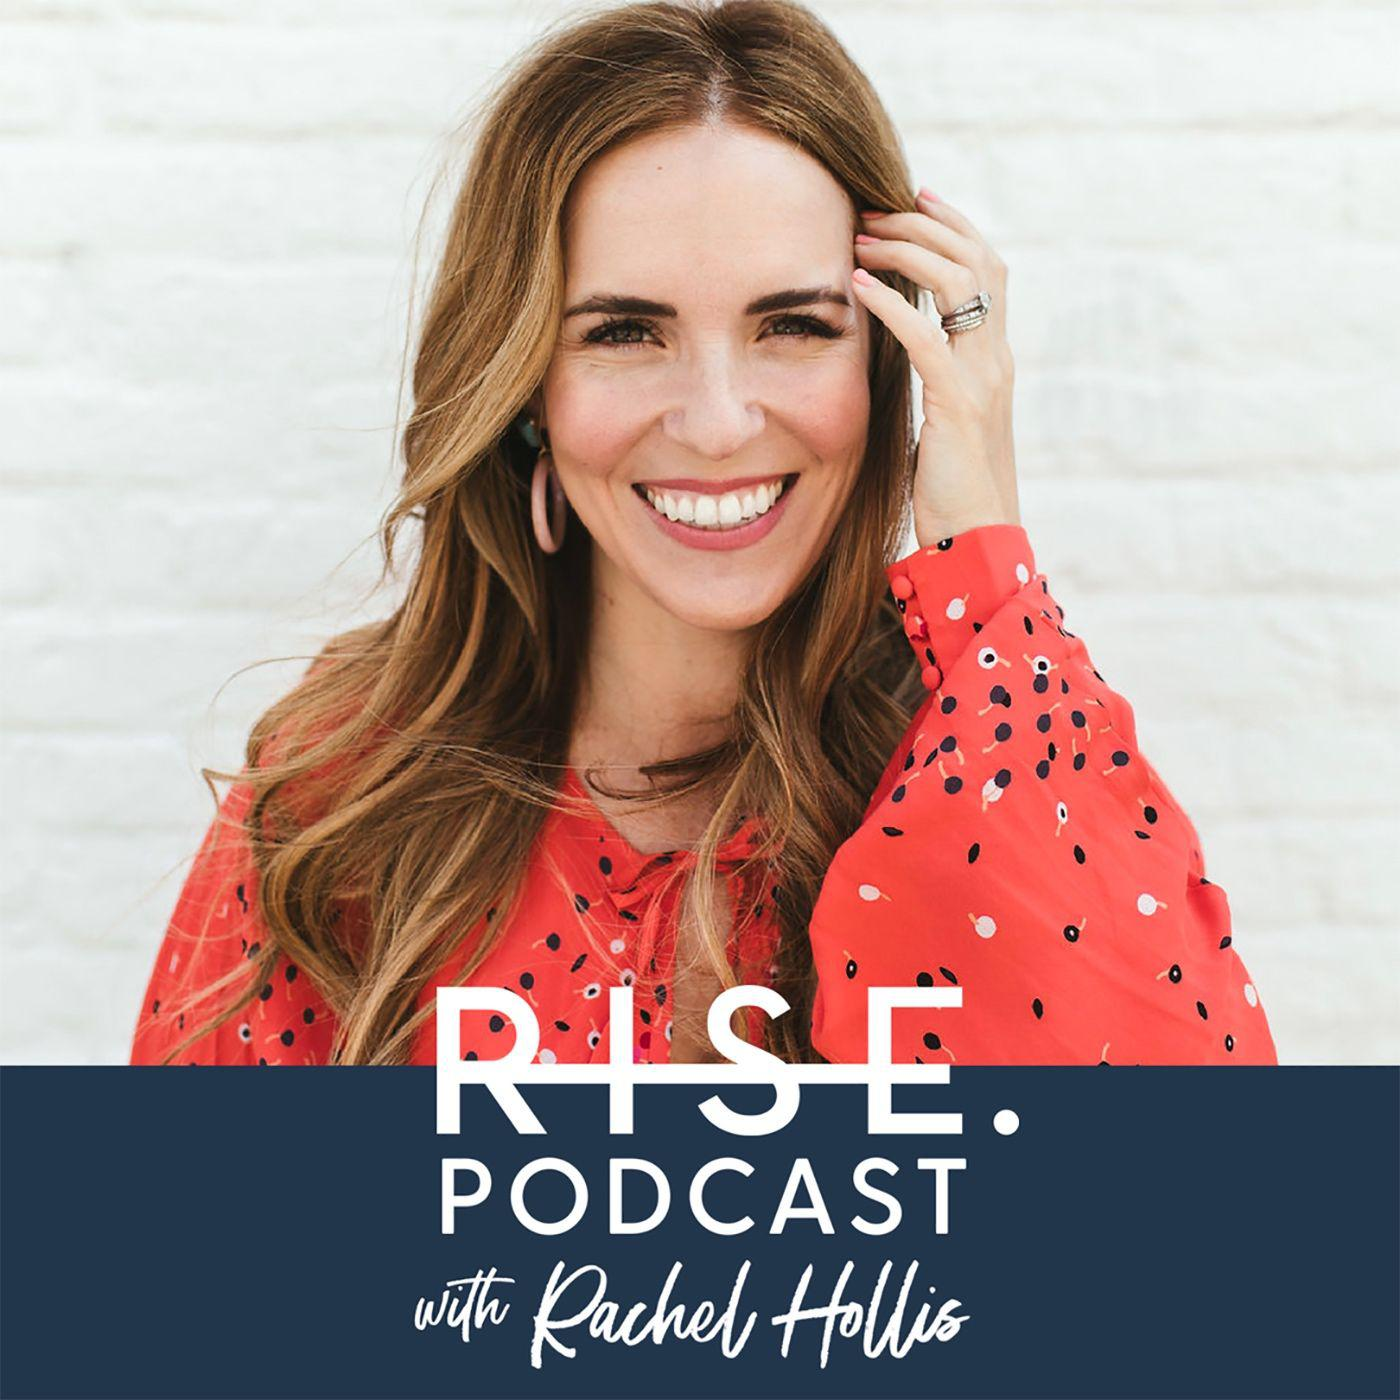 Rise podcast with Rachel Hollis